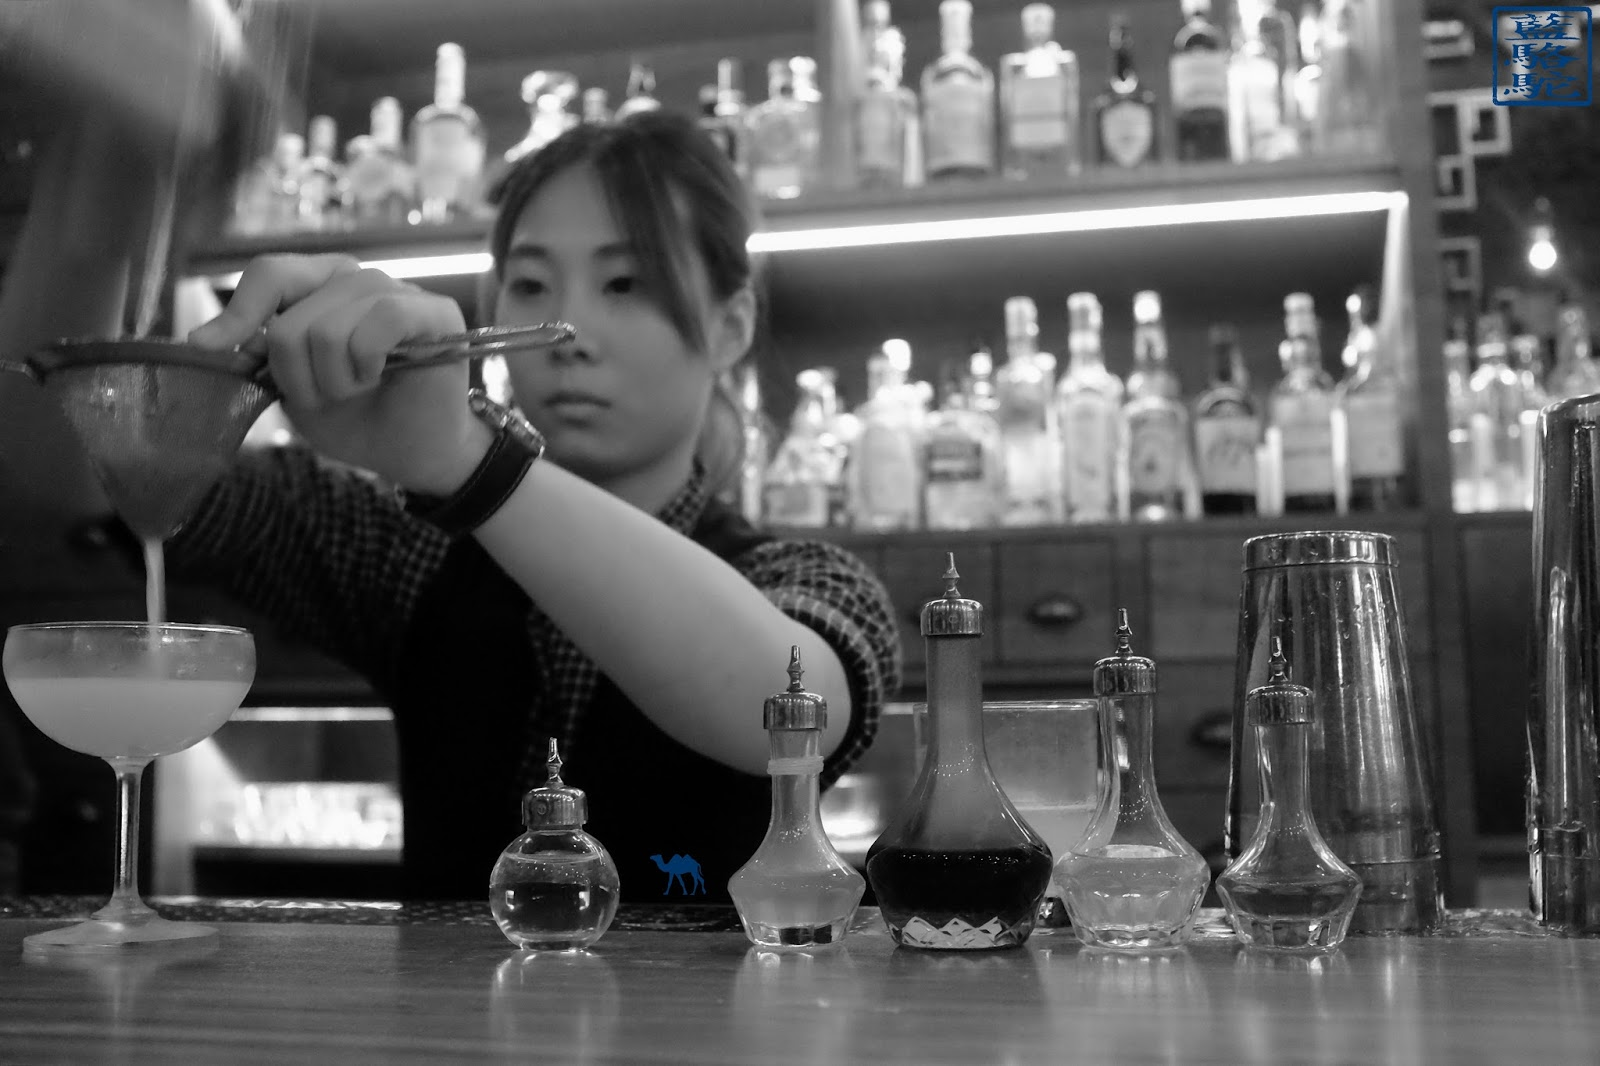 Le Chameau Bleu - Barmaid du R&D Cocktail Lab - Taipei